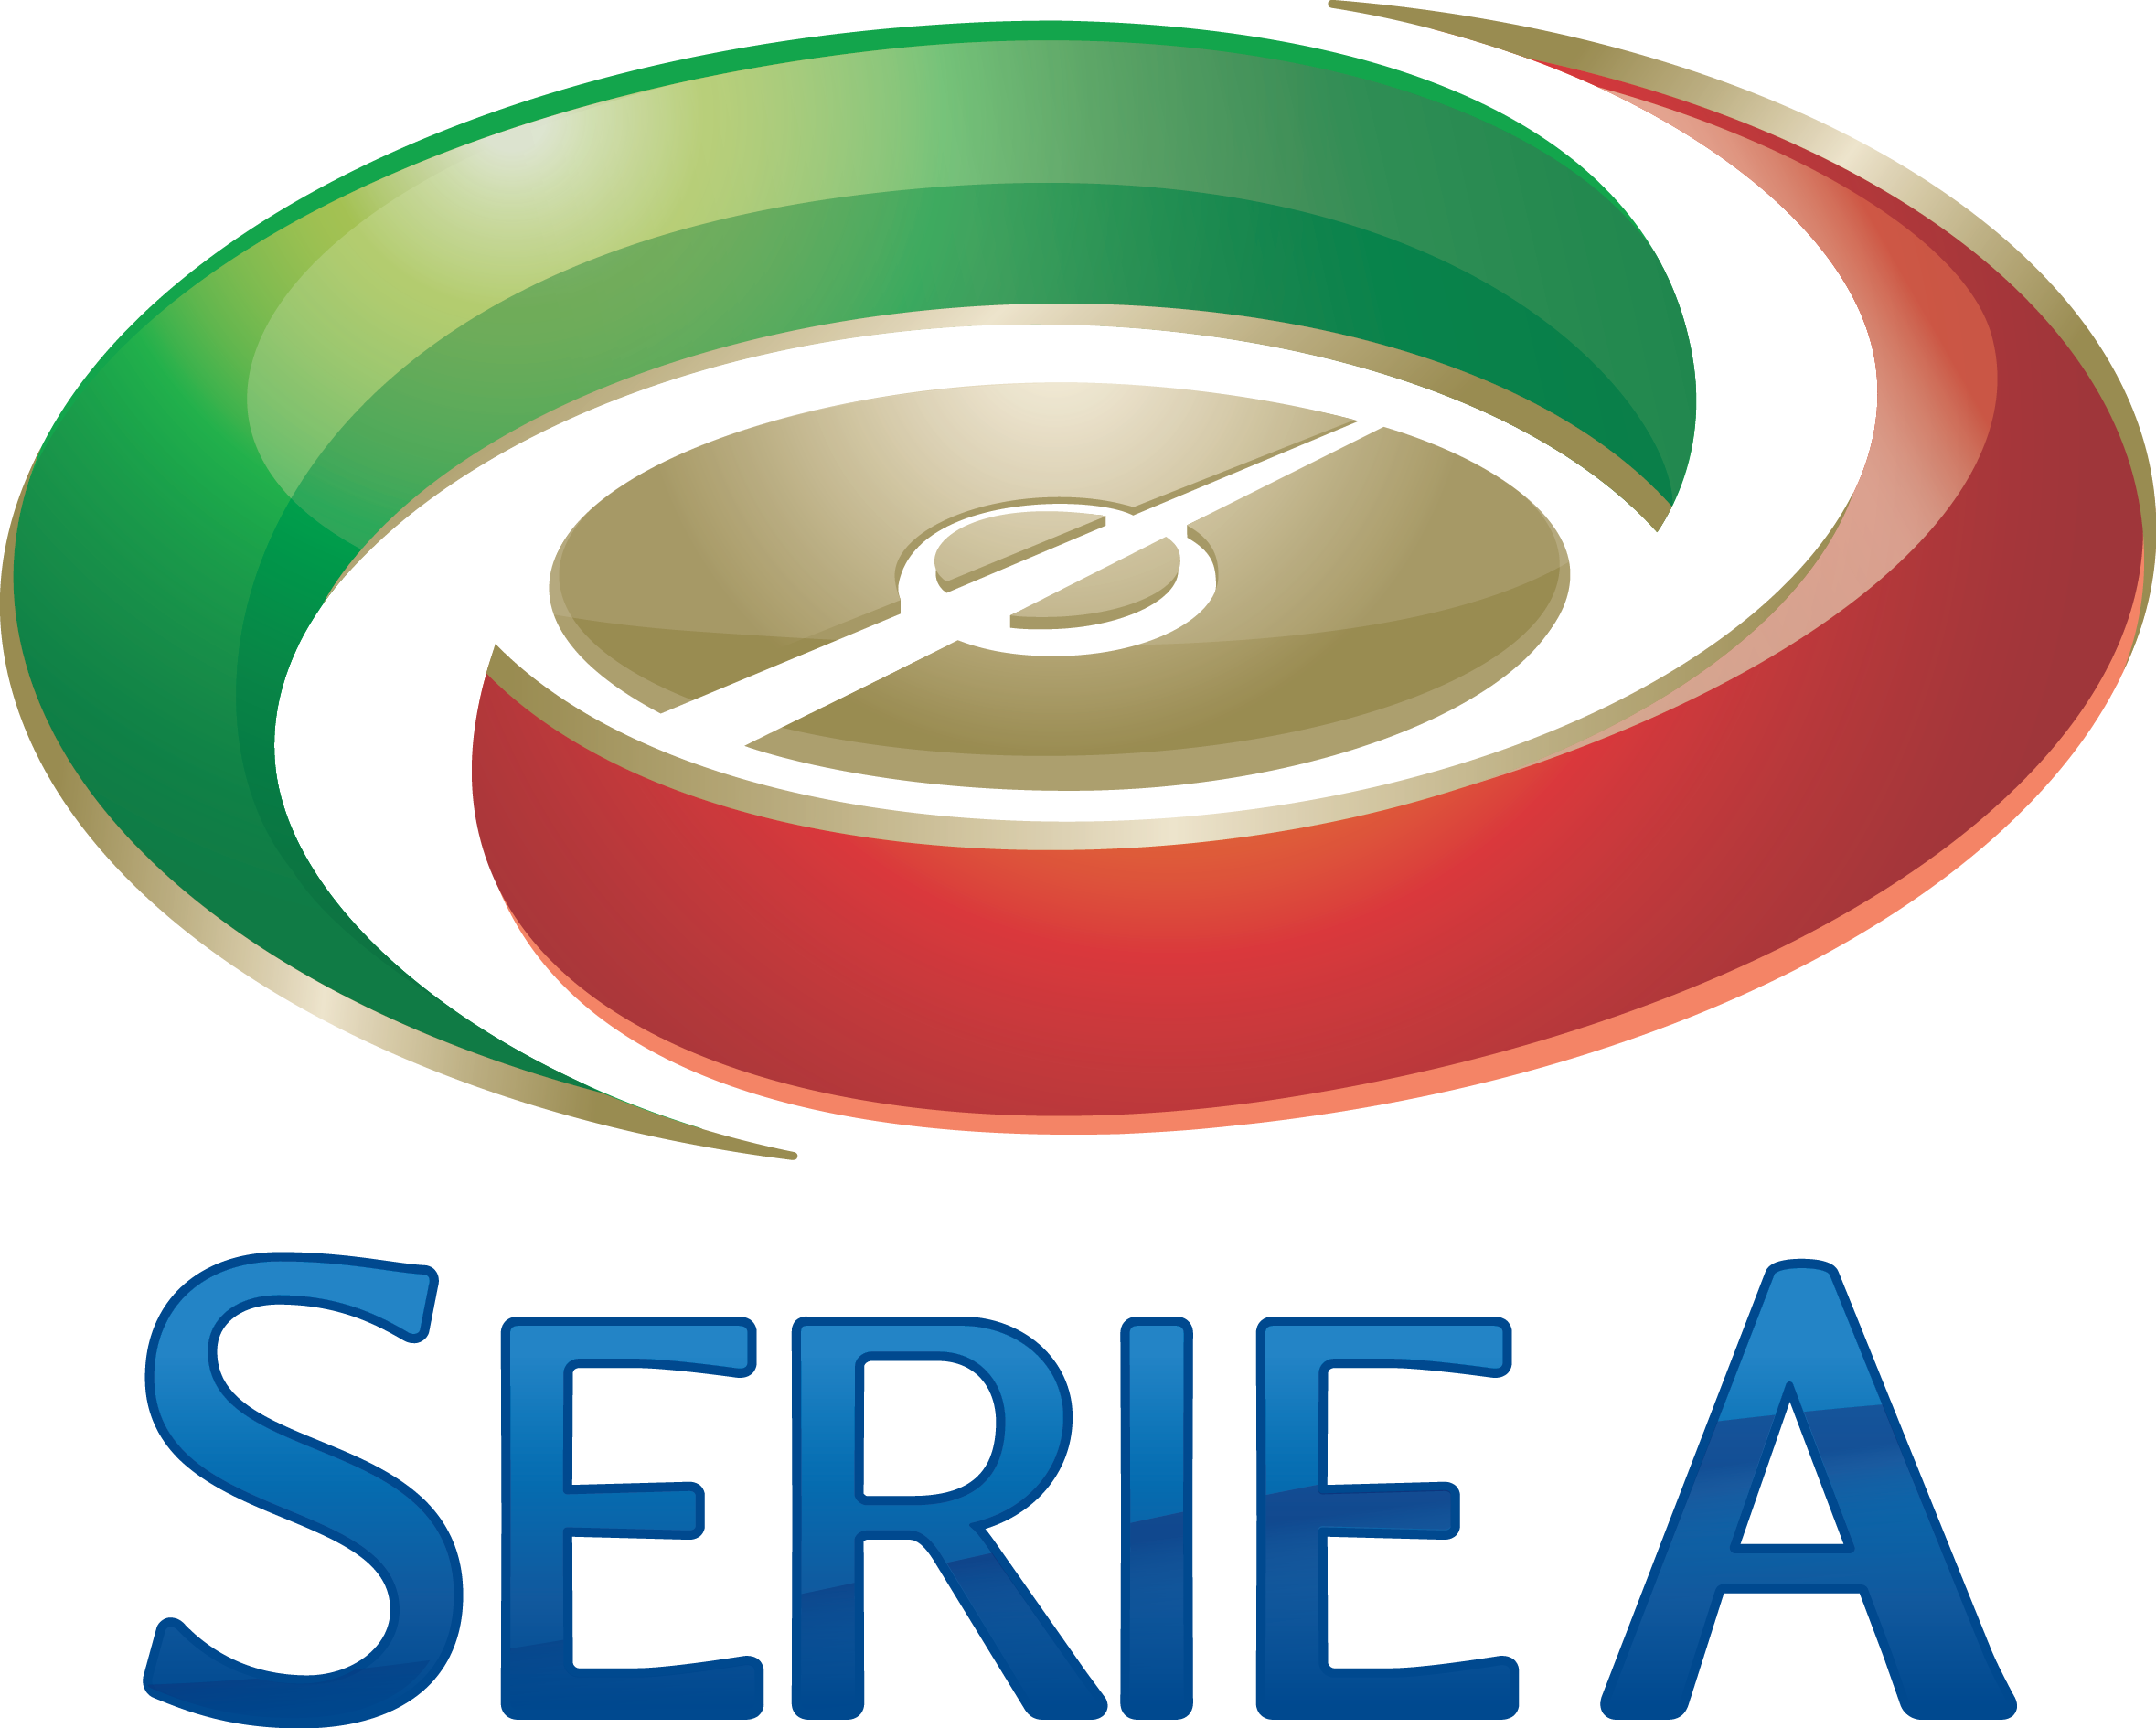 Lazio vs Bologna 2-1 All goals and highlights 22/08/2015